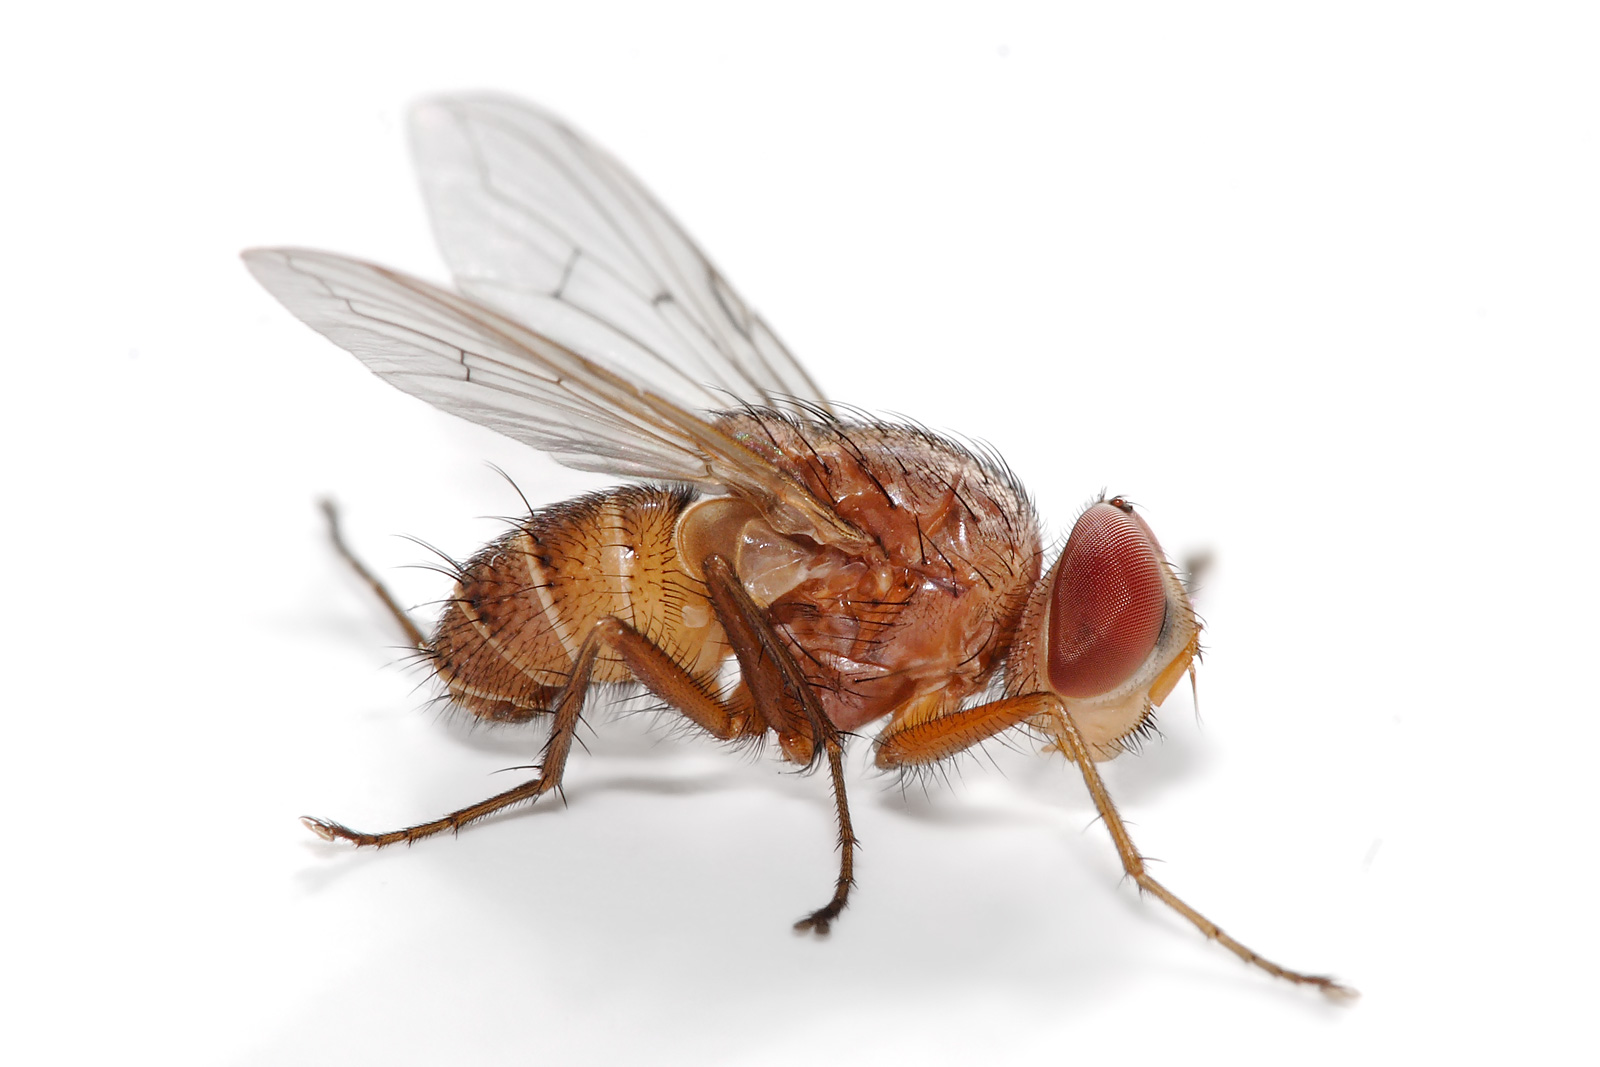 Download this File Fly Muscidae picture